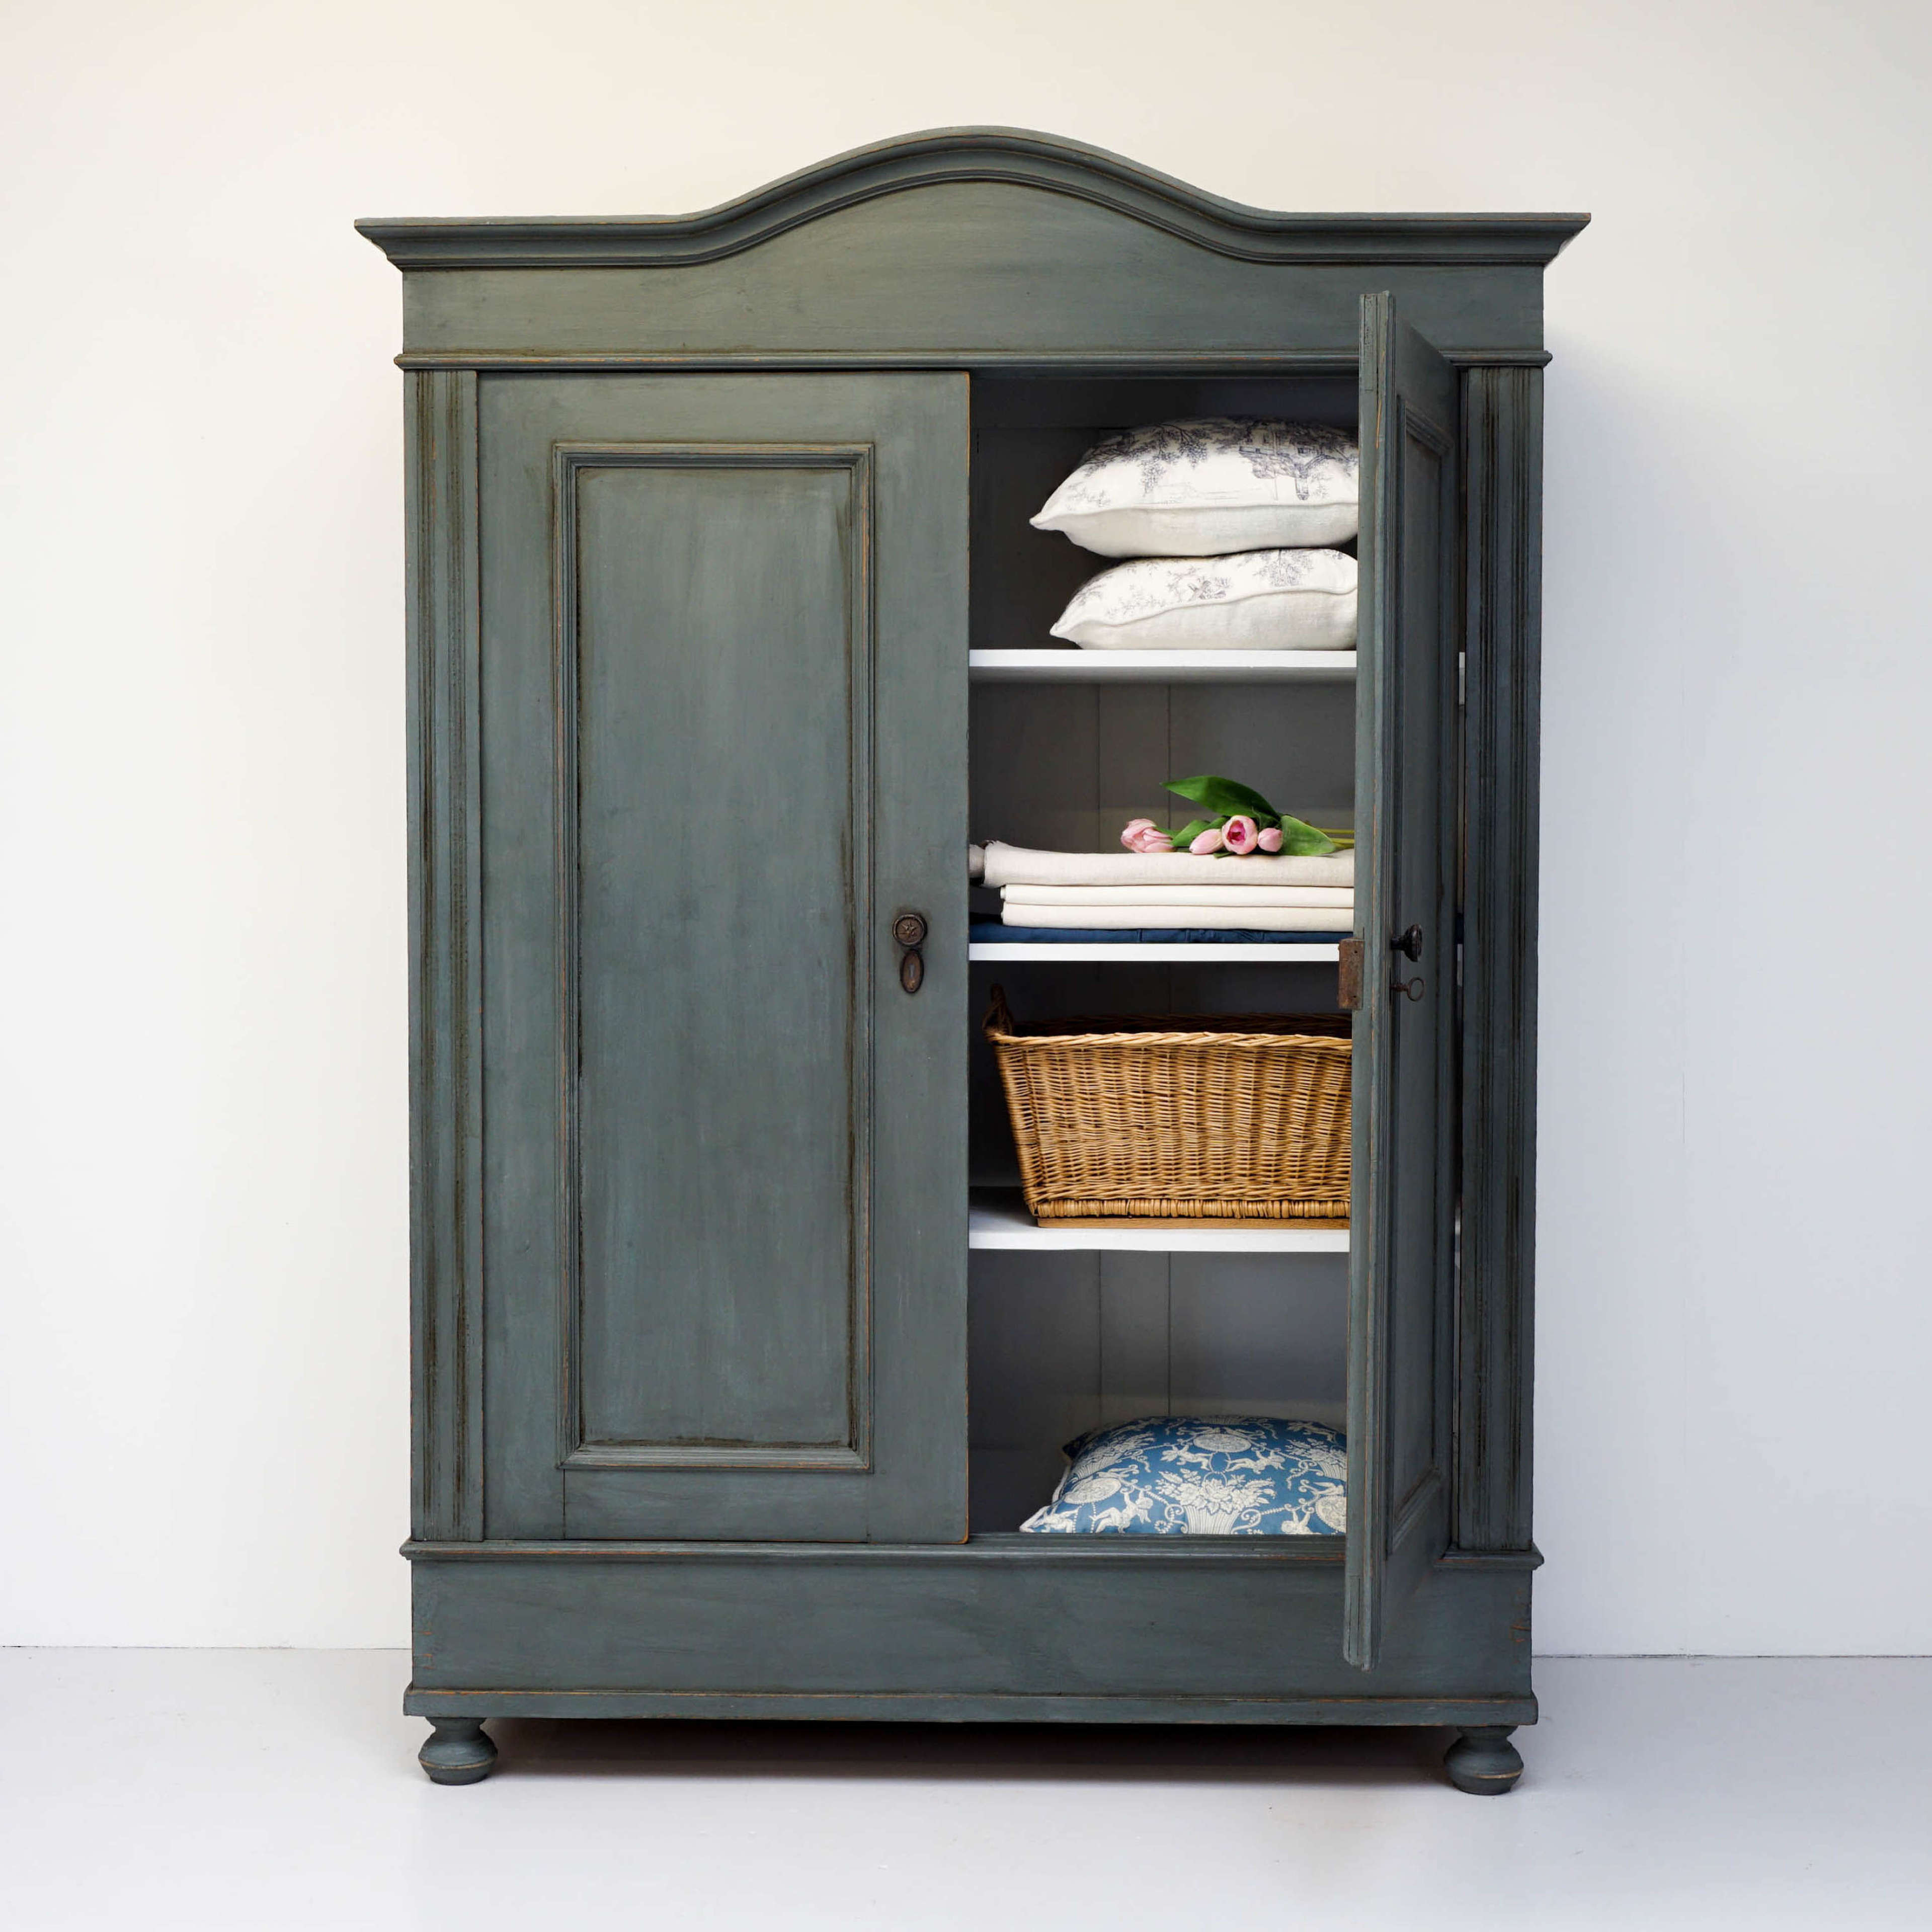 House Keepers Cupboard